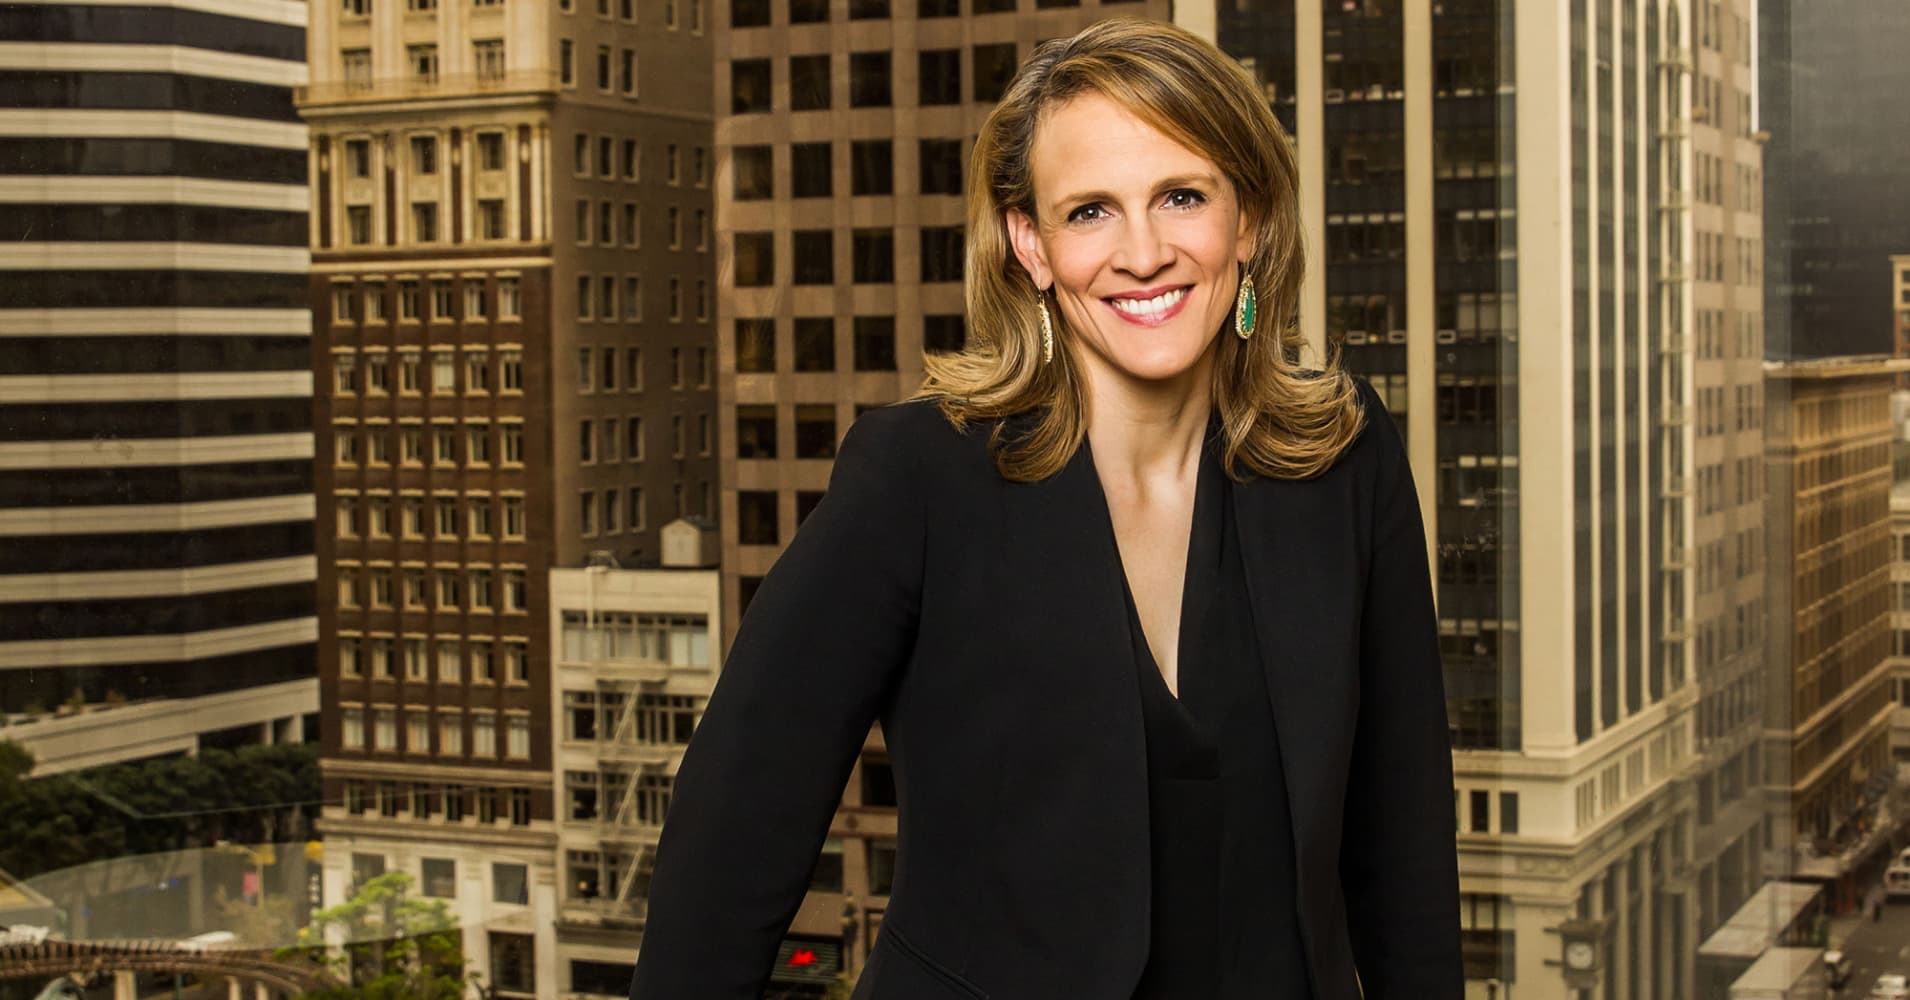 Christa Quarles, CEO of OpenTable.